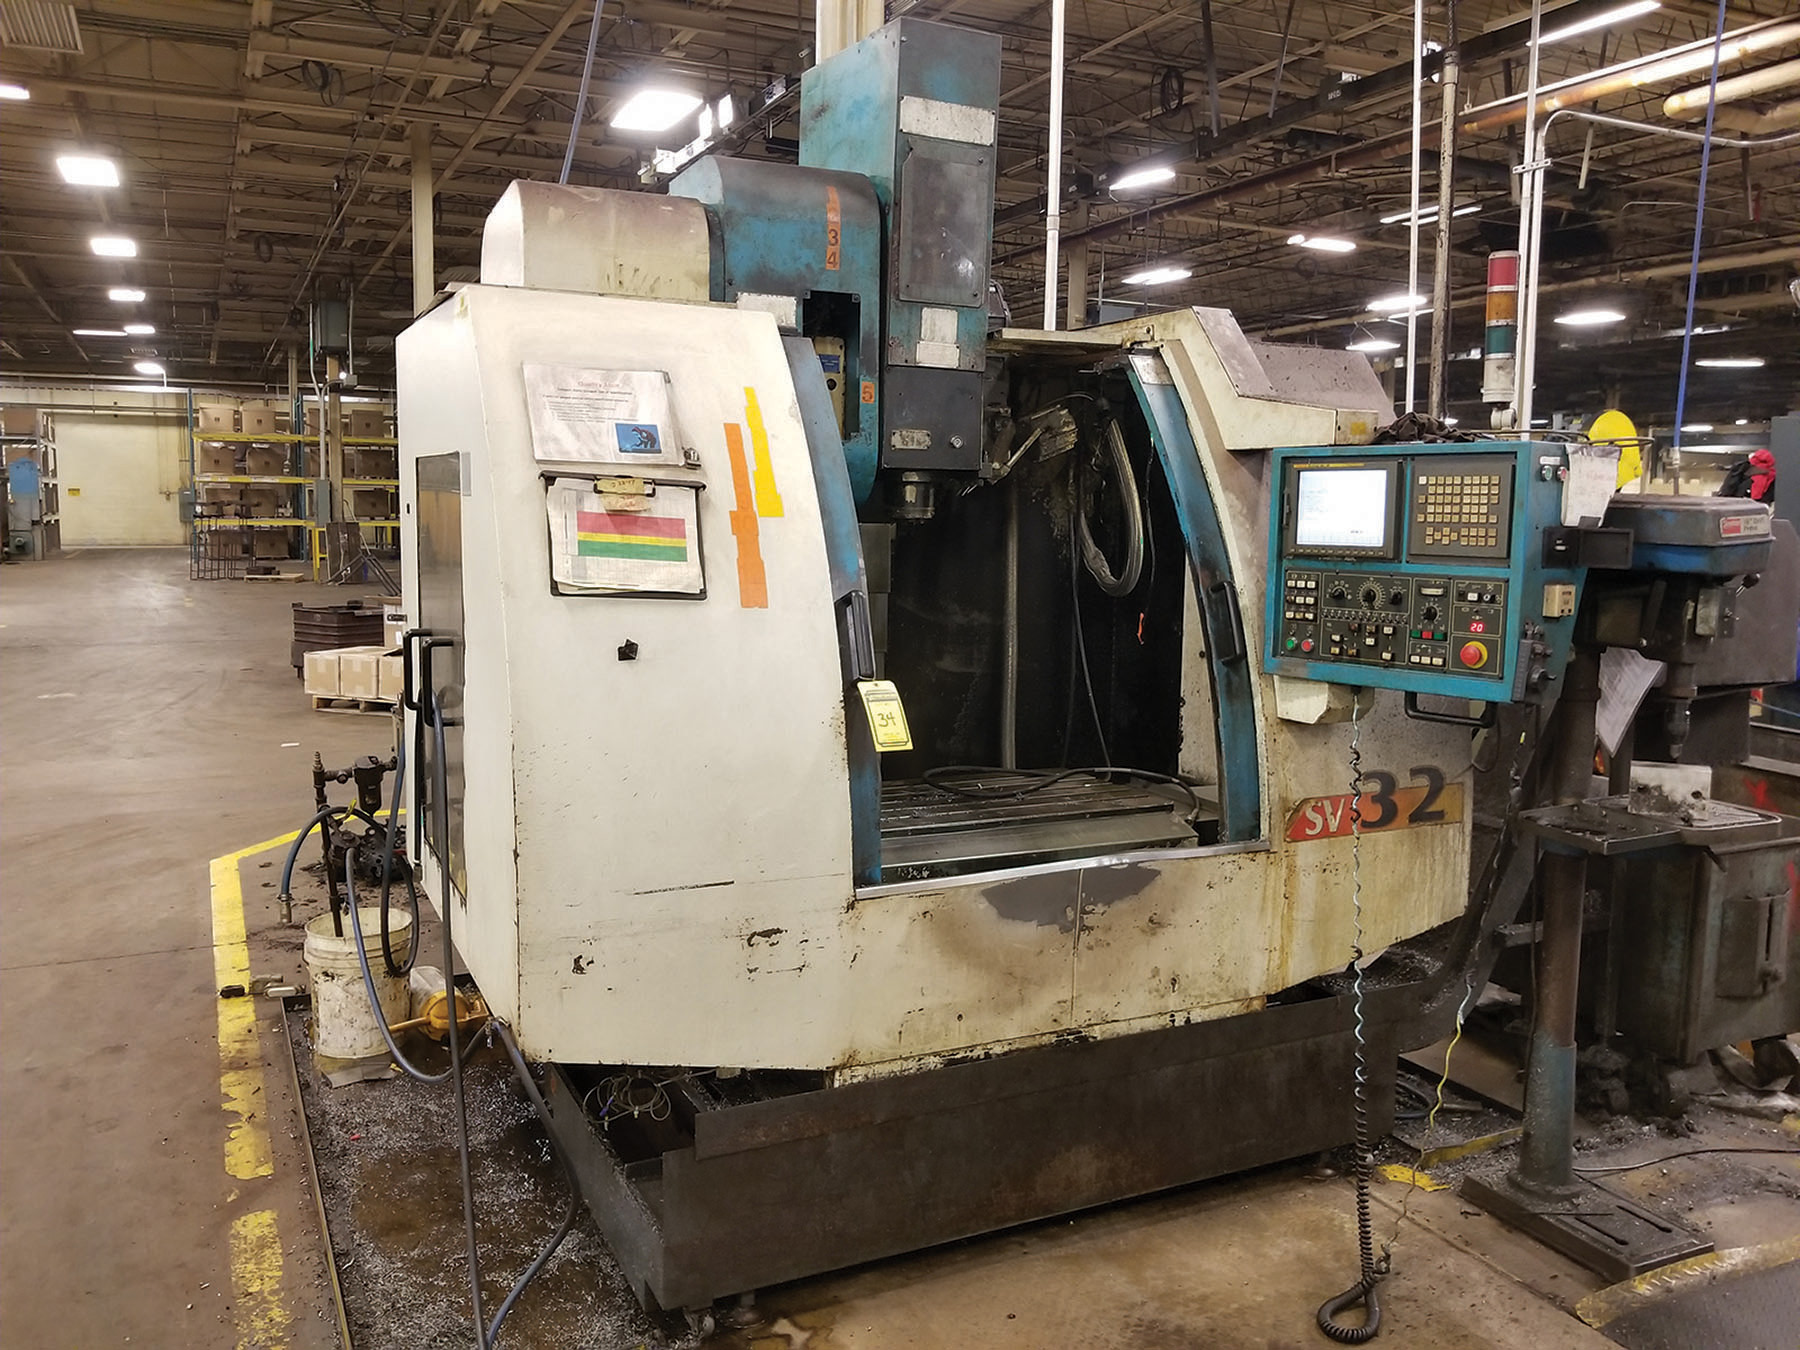 Lot 34 - 2002 JOHNFORD SUPER VERTICAL SV-32 VERTICAL MACHINING CENTER, 4-AXIS, S/N MB2302, 17.5'' X 39.25''